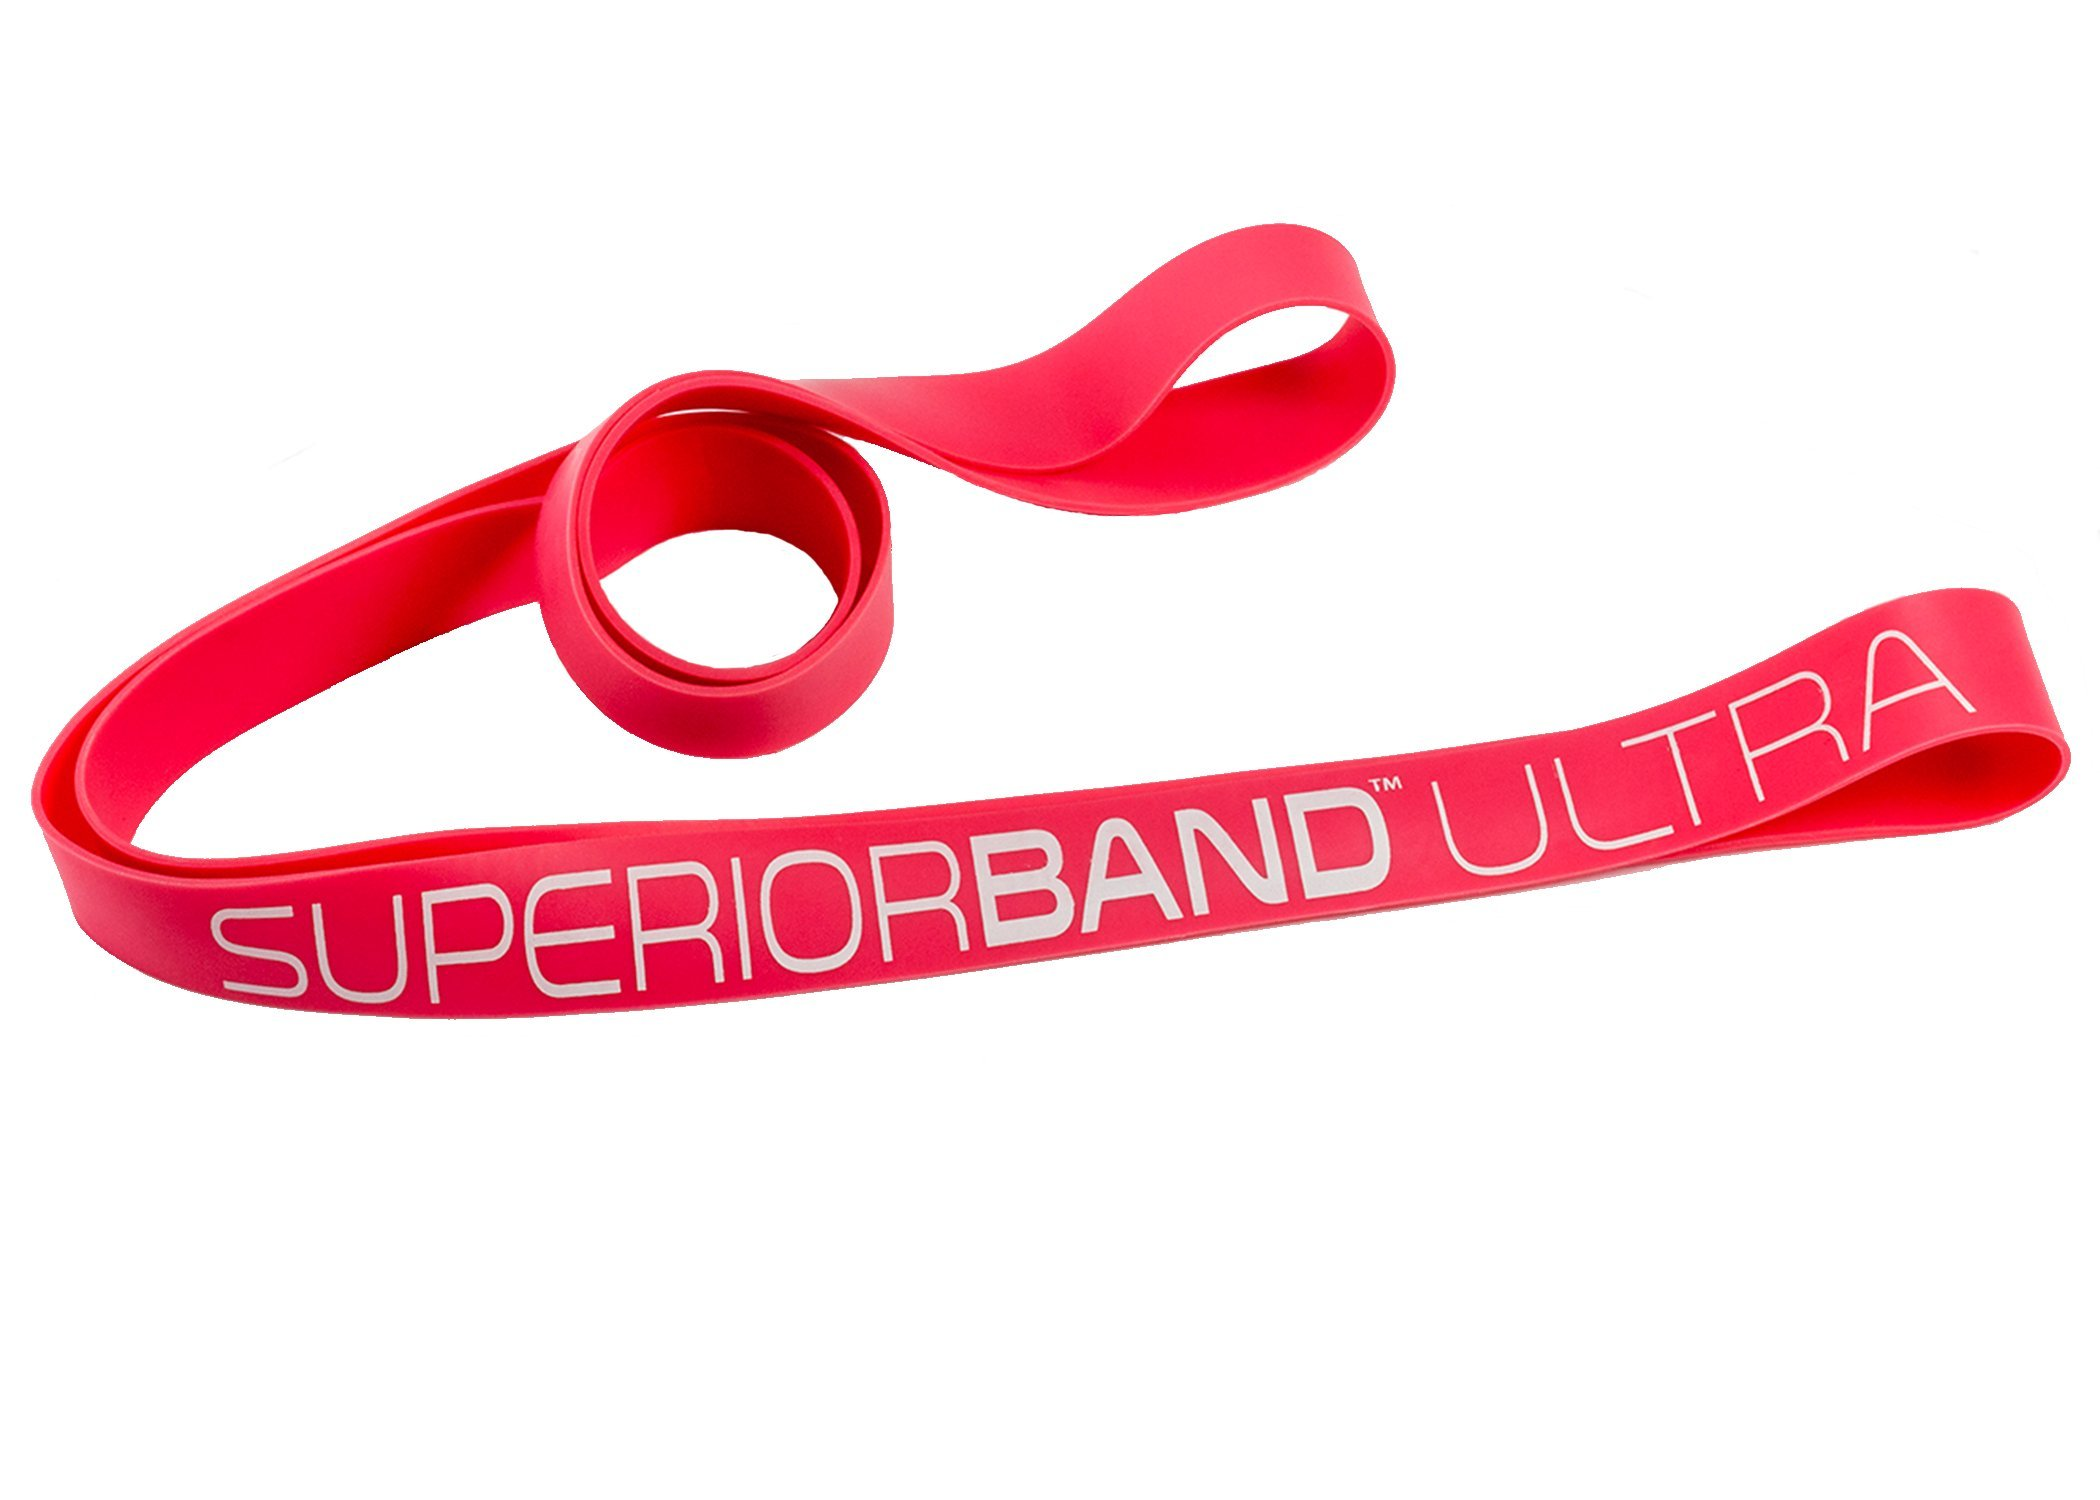 SUPERIORBAND ULTRA - PINK The Serious Ballet Stretch Band for Dance, Gymnastic and Fitness Training by SuperiorBand